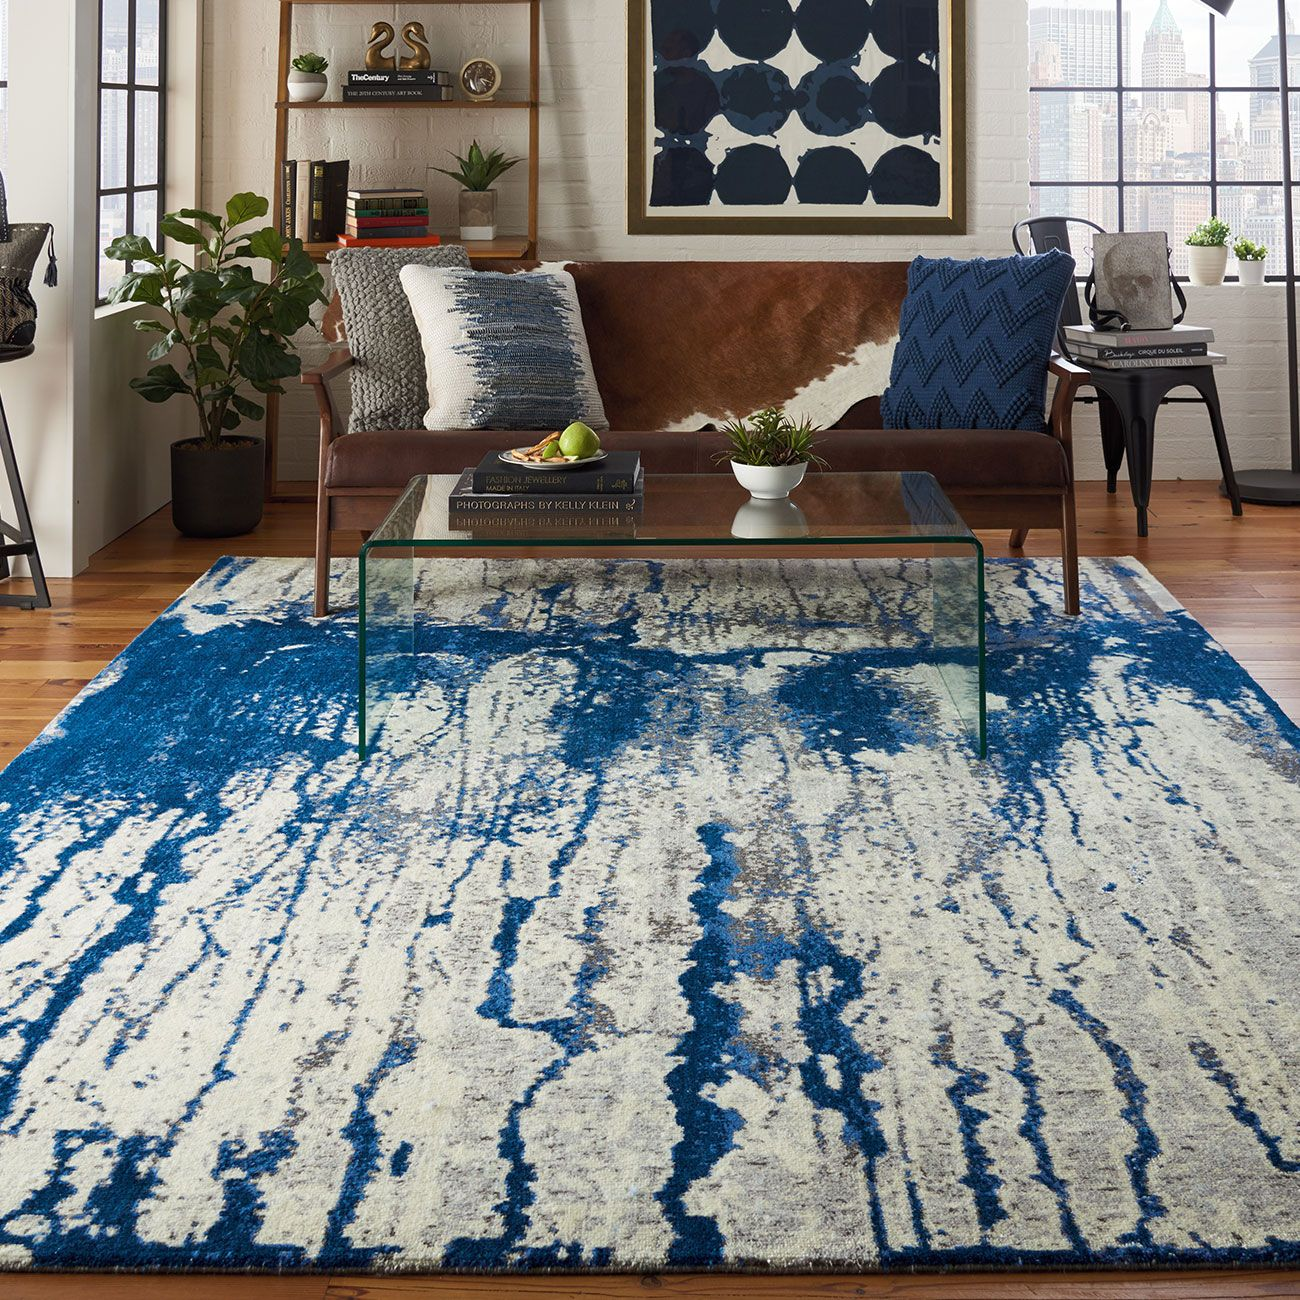 Top Five Rugs to Revitalize Your Living Room